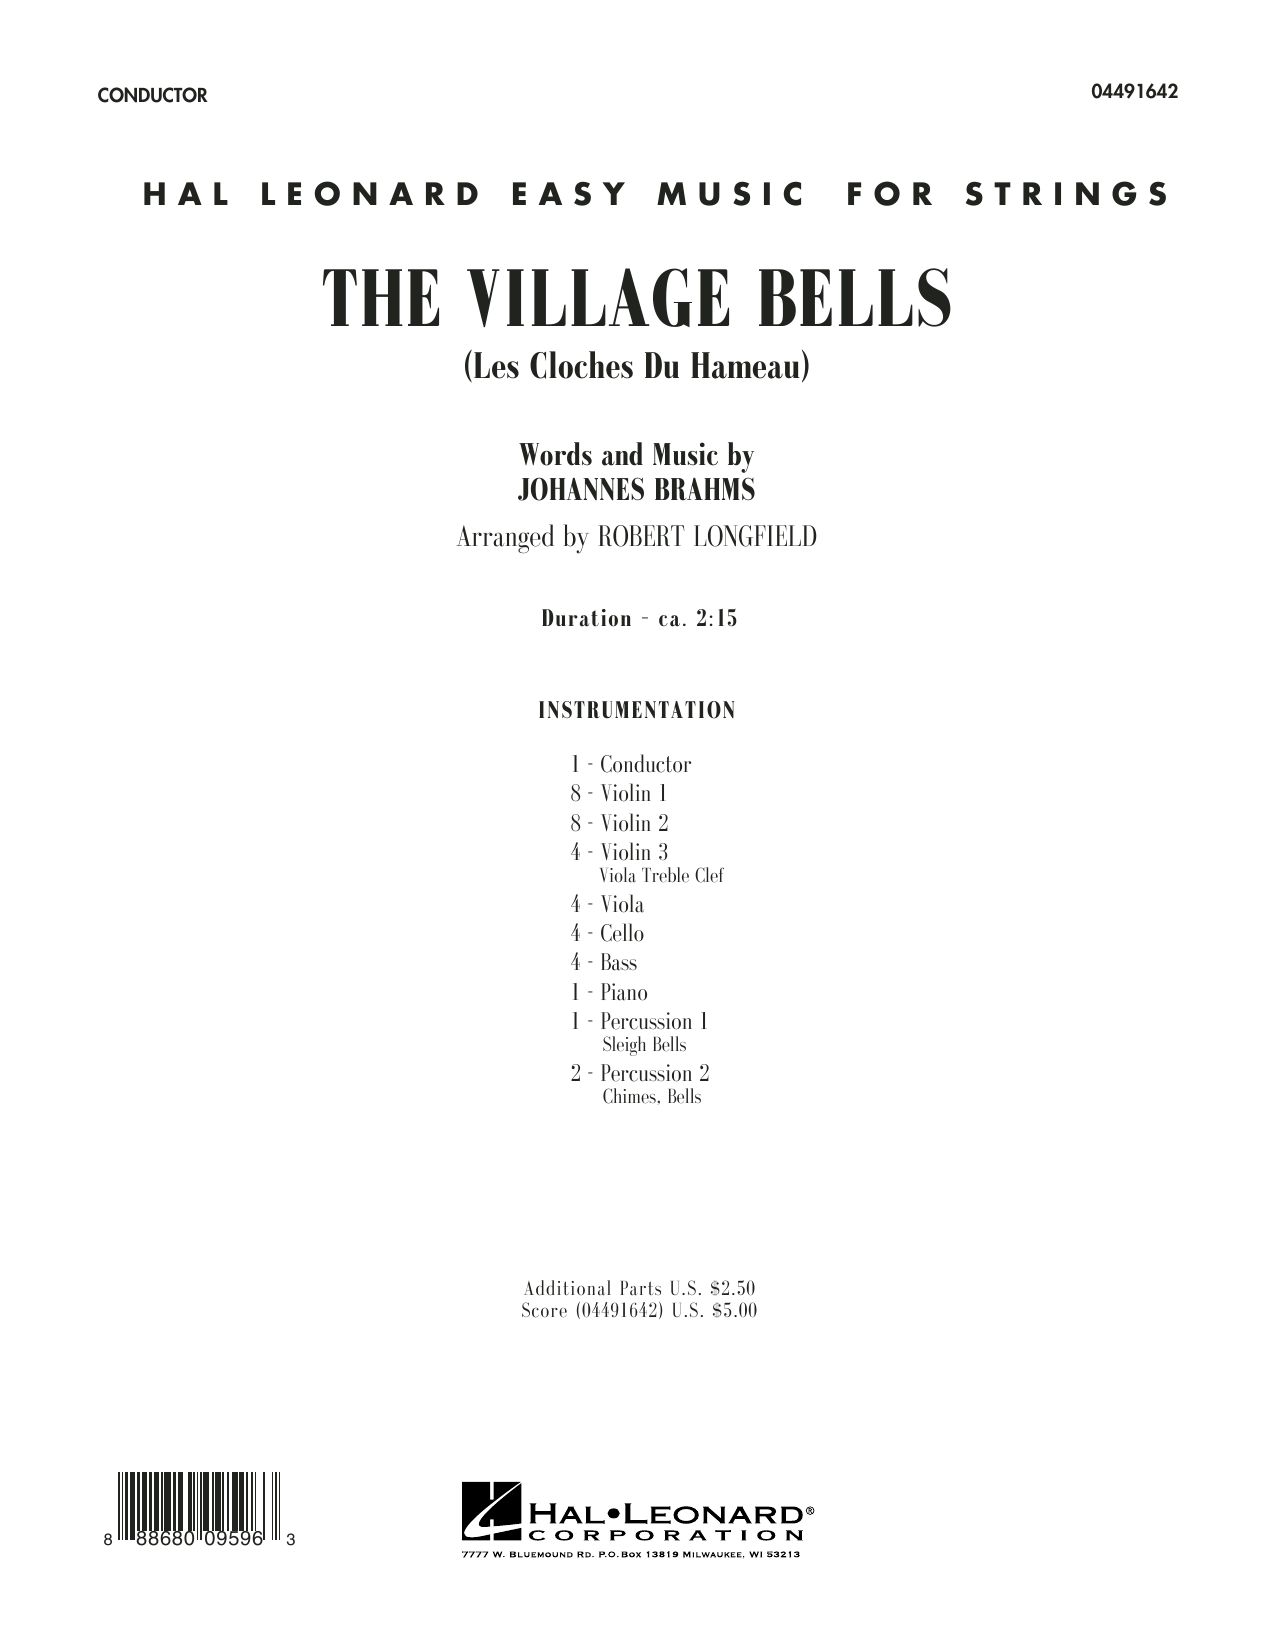 The Village Bells (Les Cloche du Hameau) (COMPLETE) sheet music for orchestra by Robert Longfield